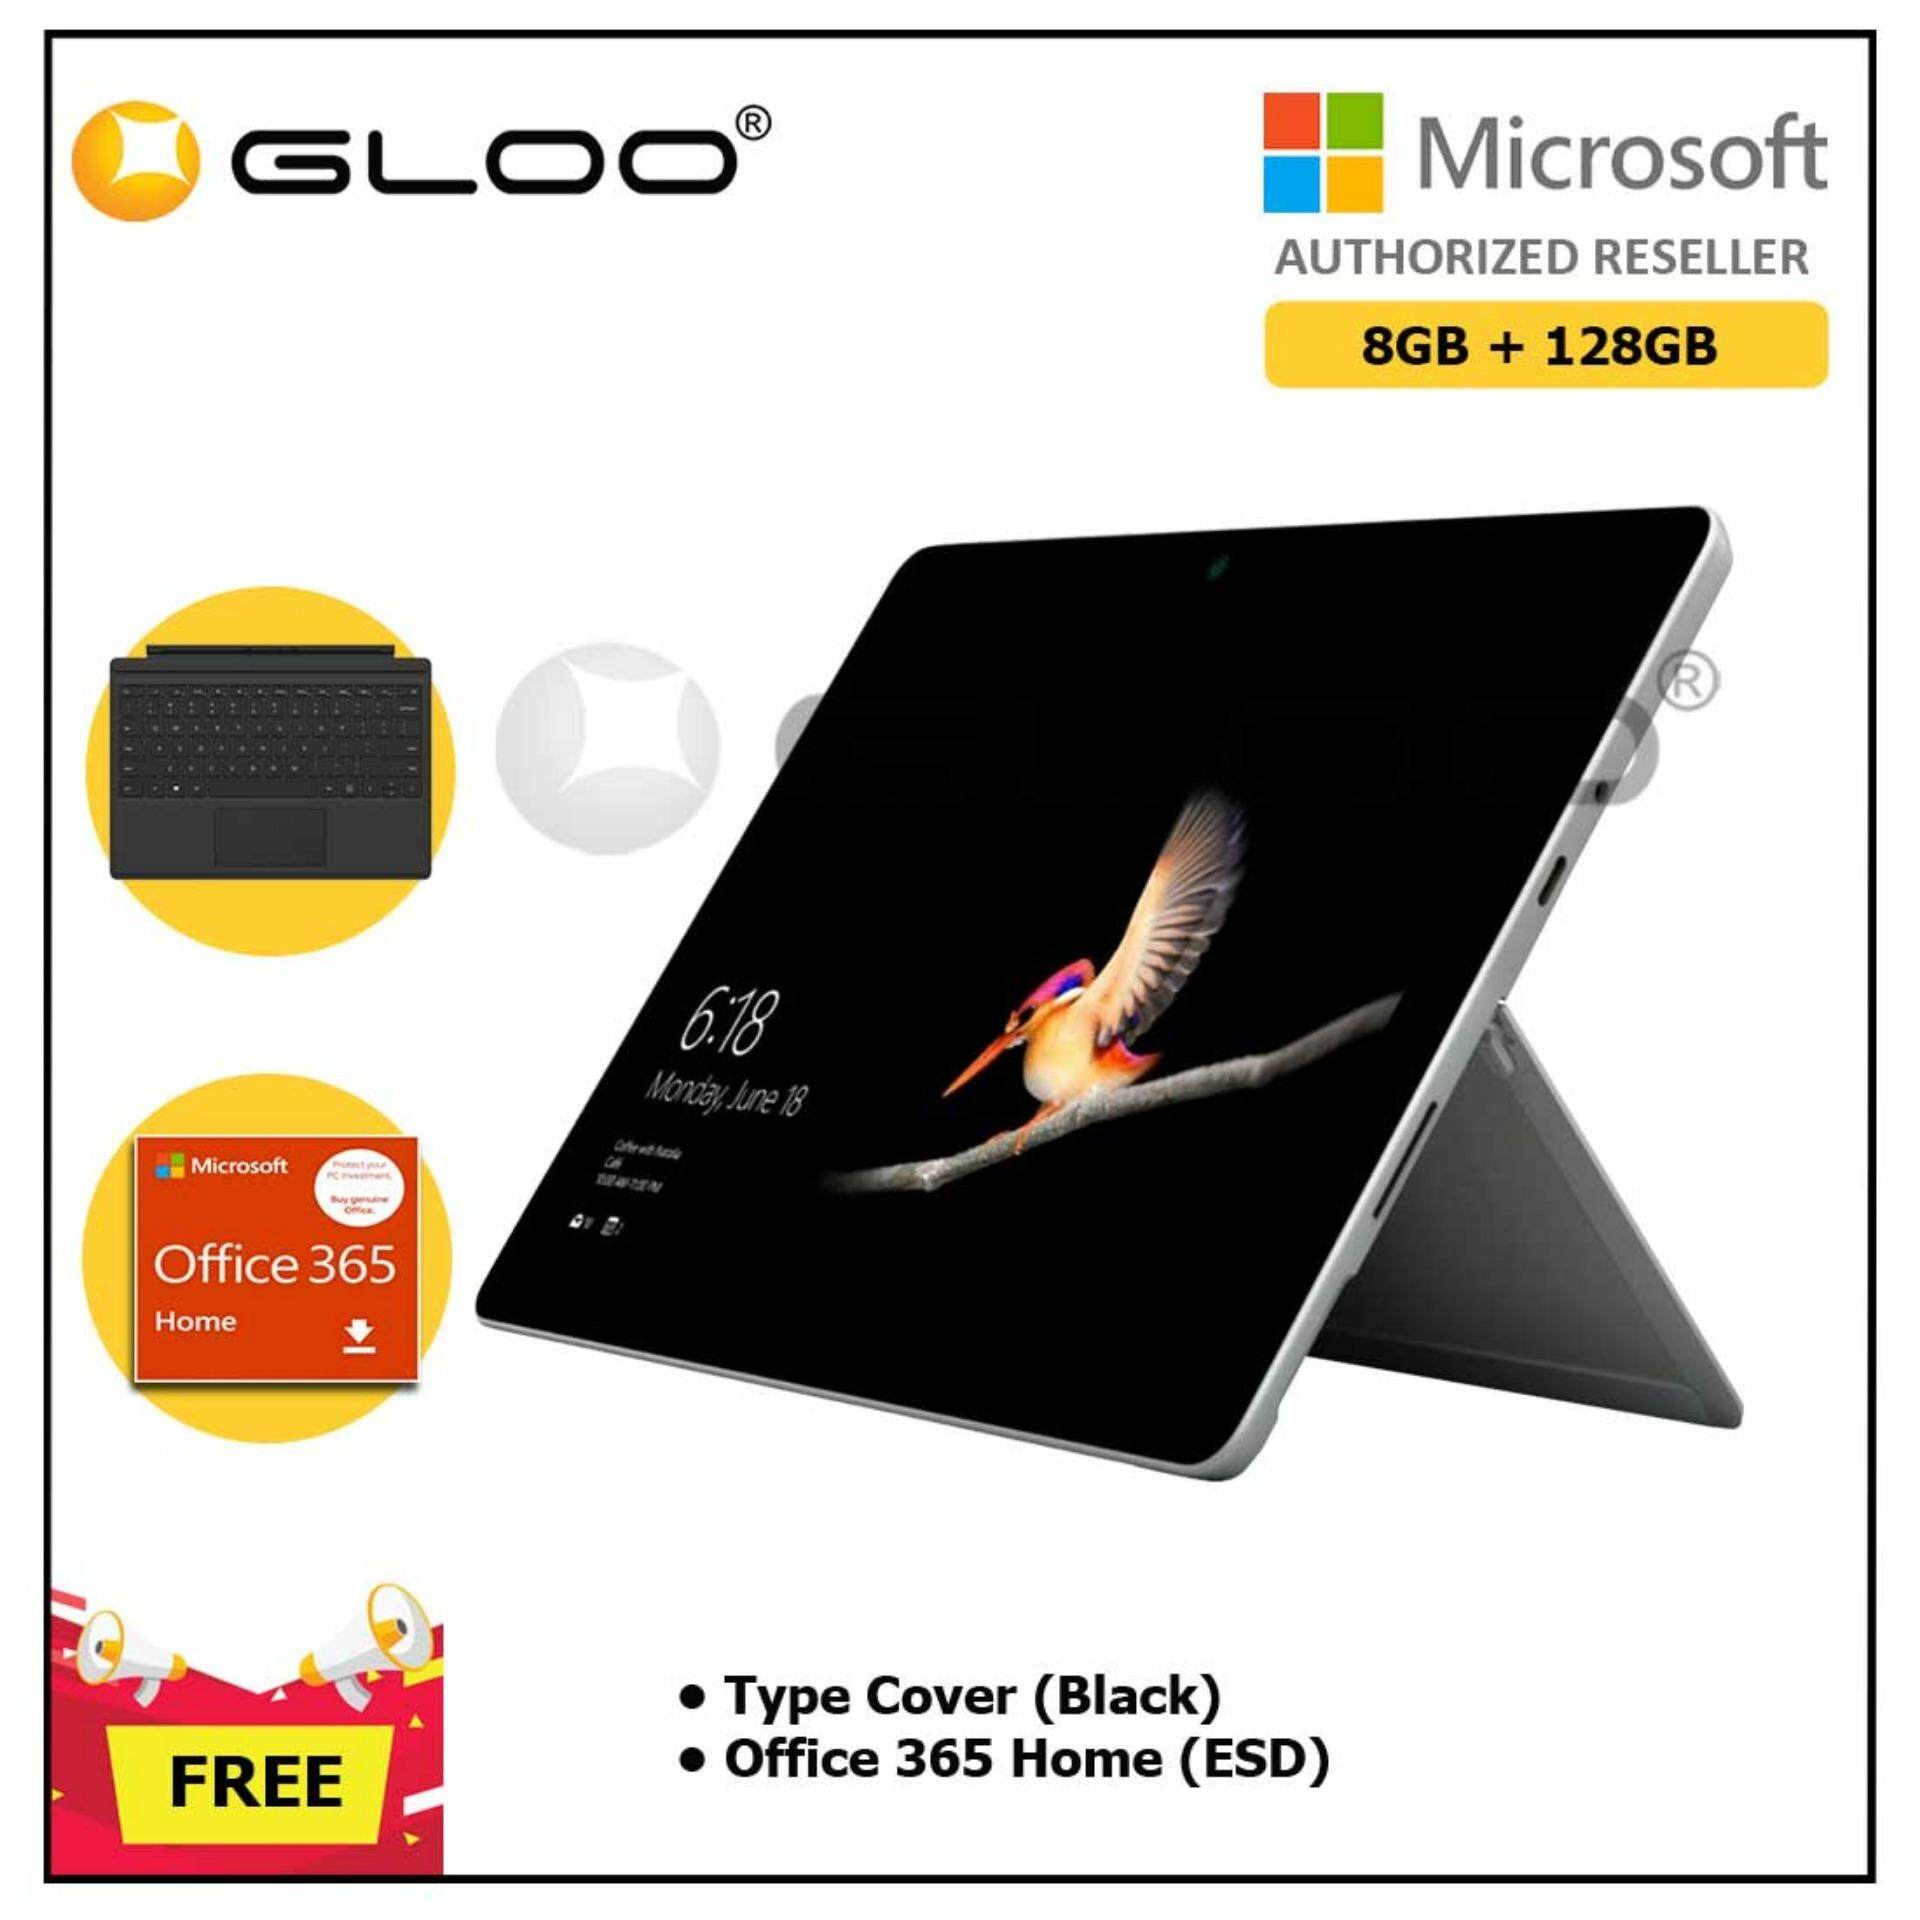 Surface Go Y/8GB 128GB + Surface Go Type Cover Black + Office 365 Home ESD